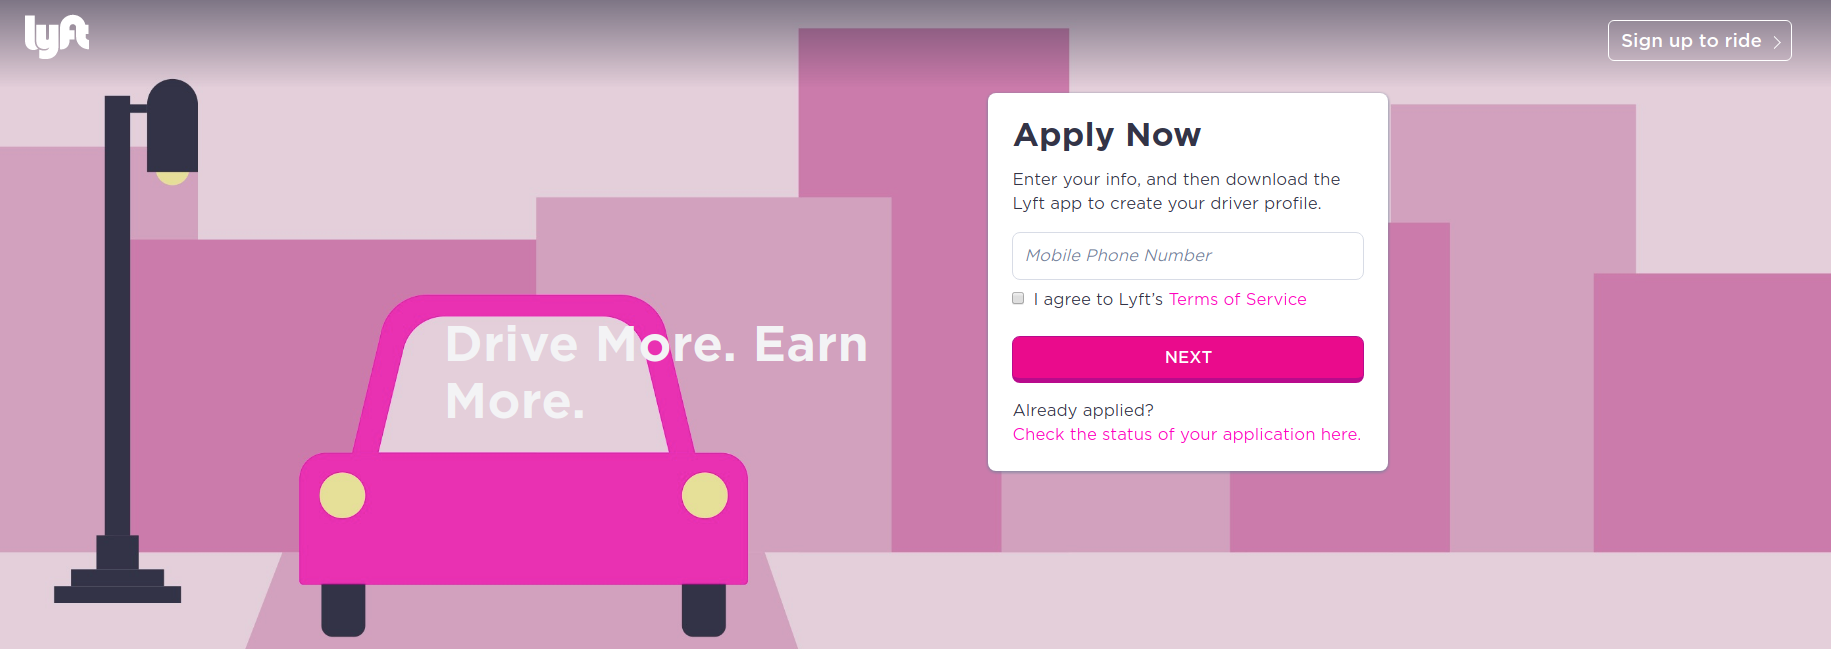 marketplace lyft